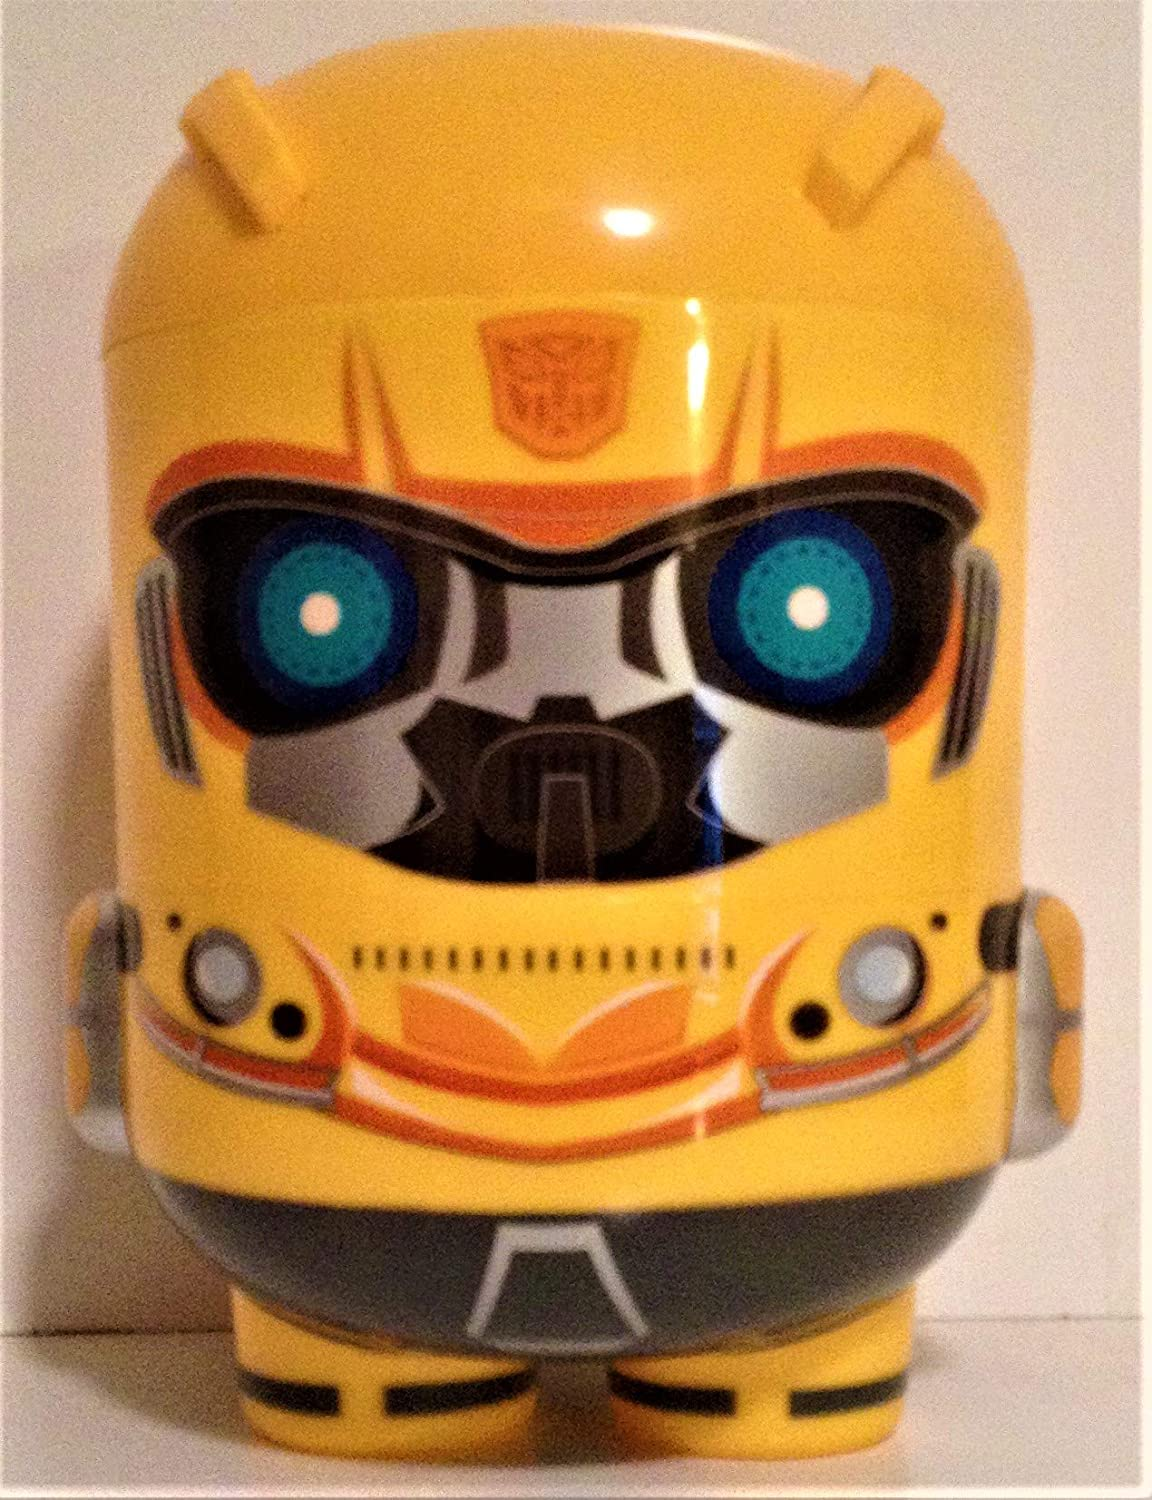 Transformers/Bumblebee 2018 Movie Theater Exclusive 85 oz Popcorn Eater Bumblebee